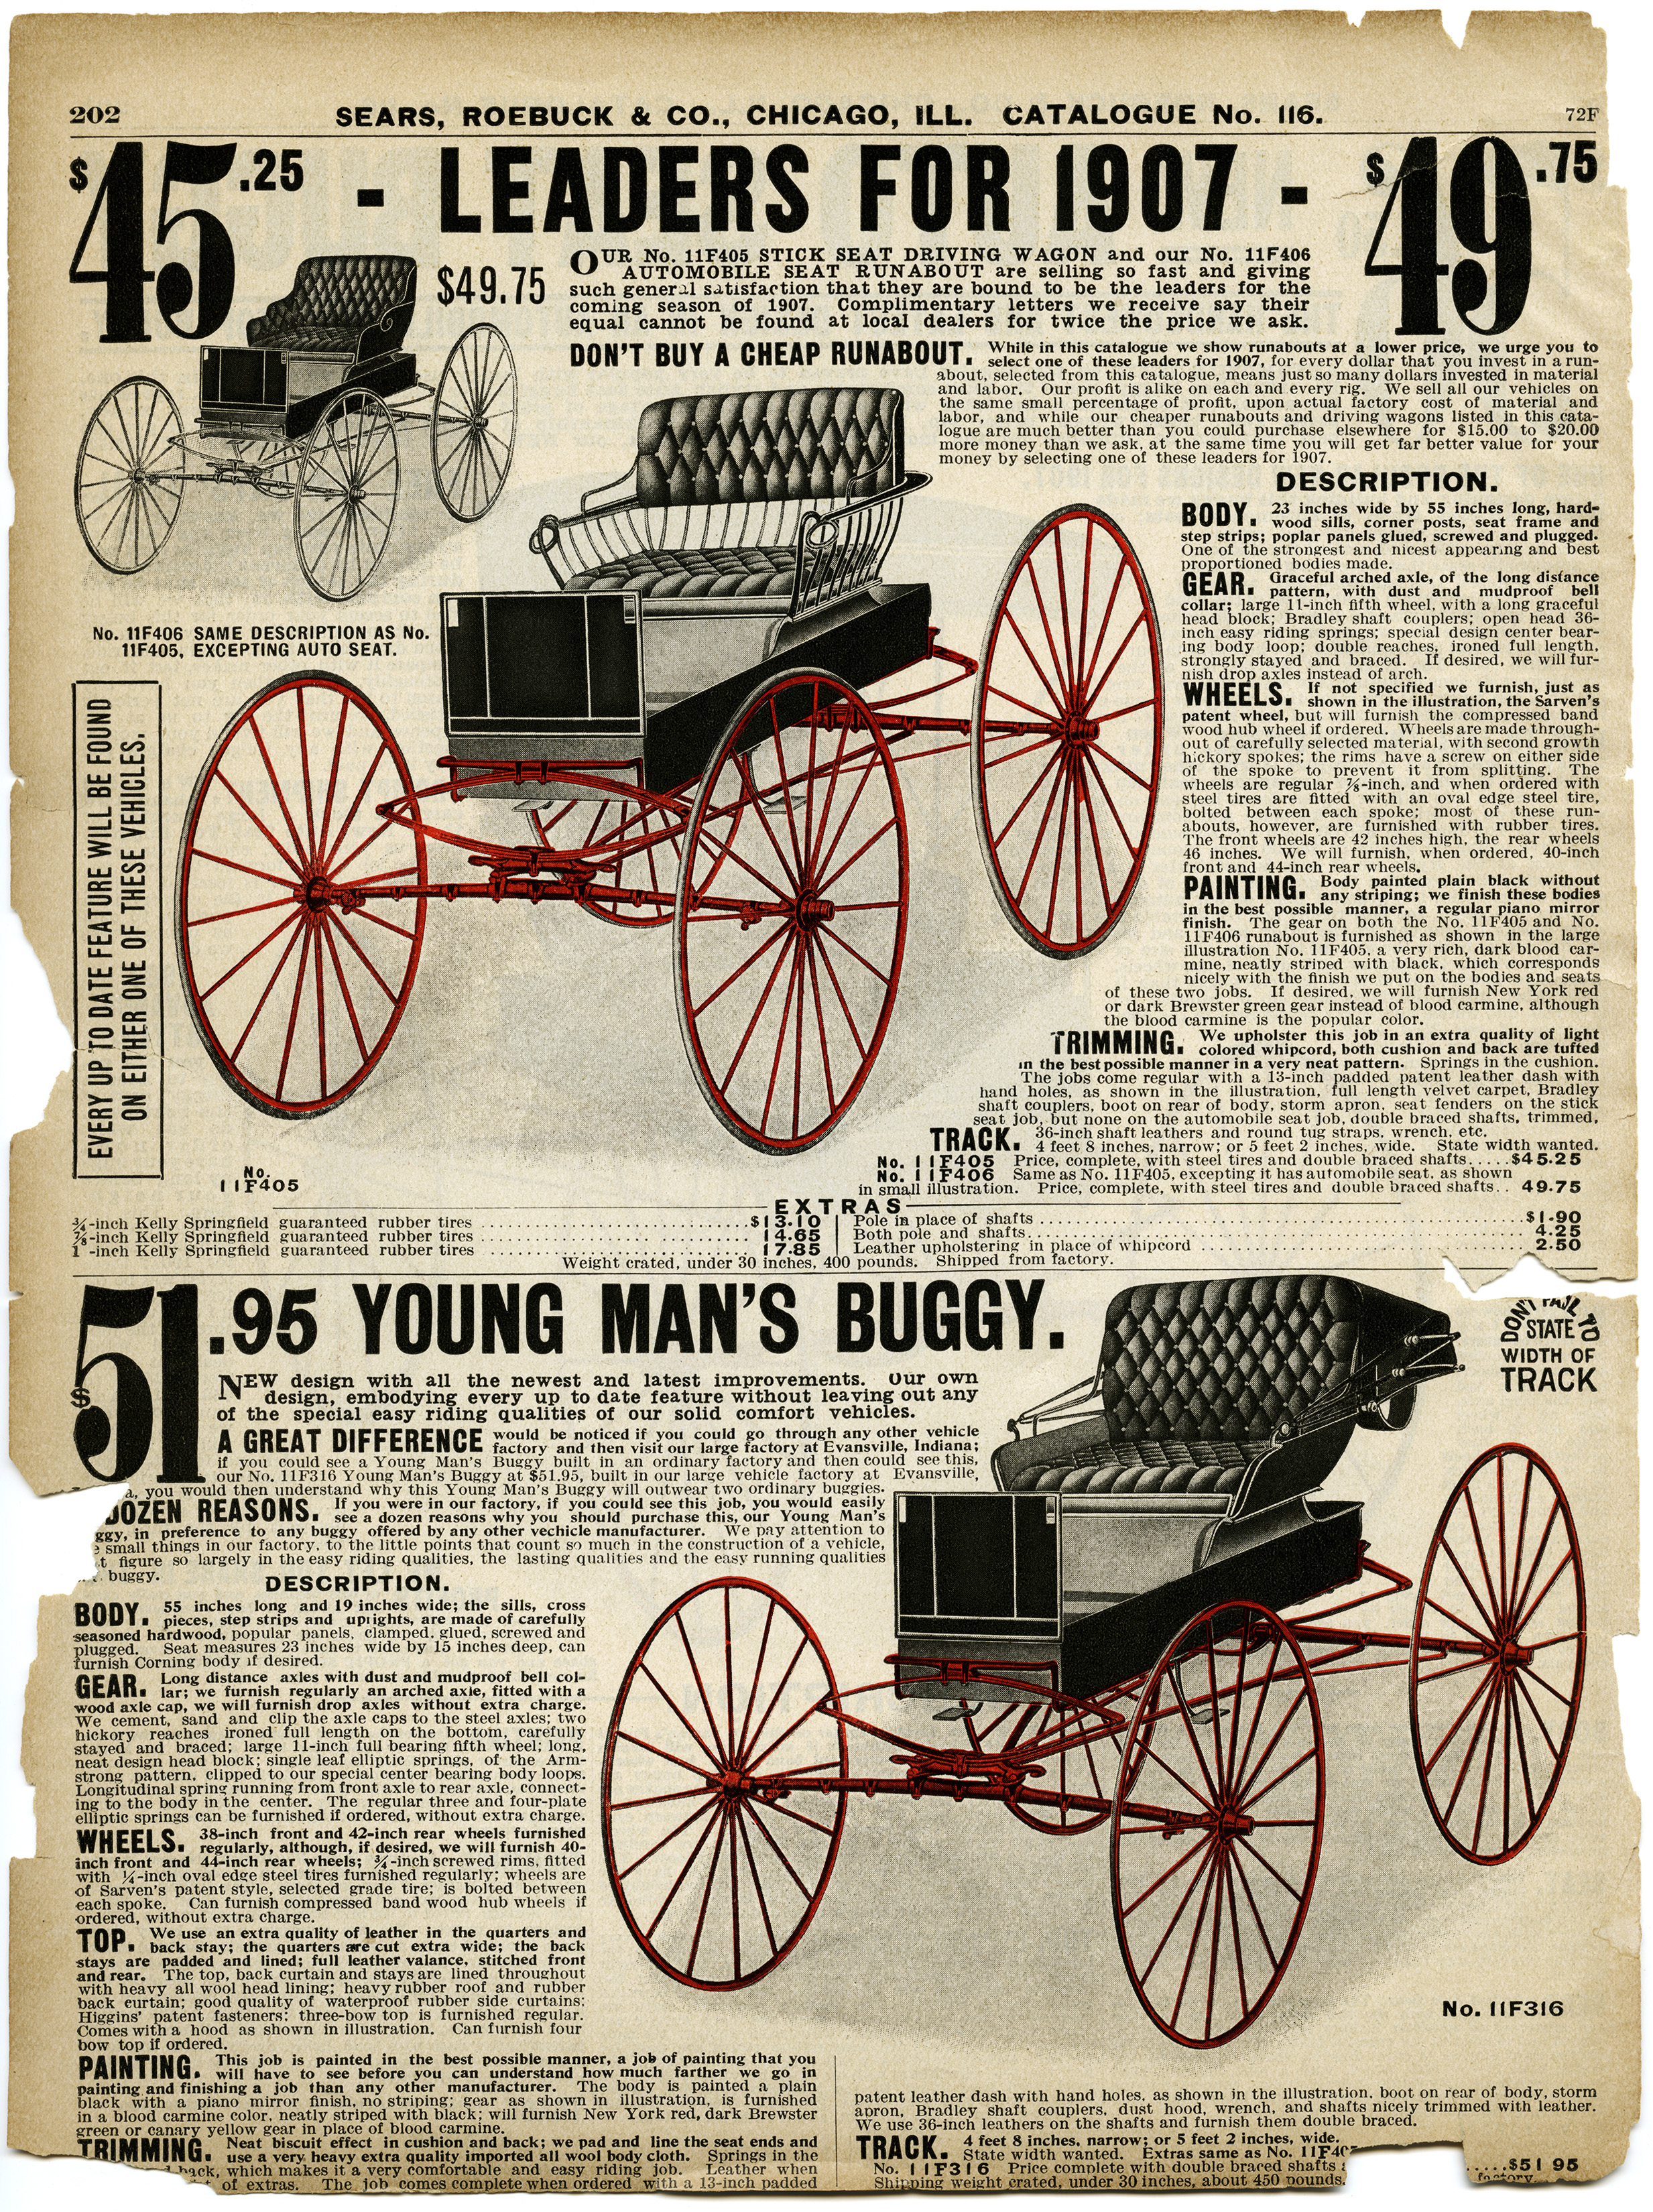 Victorian horse and carriage clipart png freeuse stock Free Vintage Image ~ Horse Buggies 1907 - Old Design Shop Blog png freeuse stock